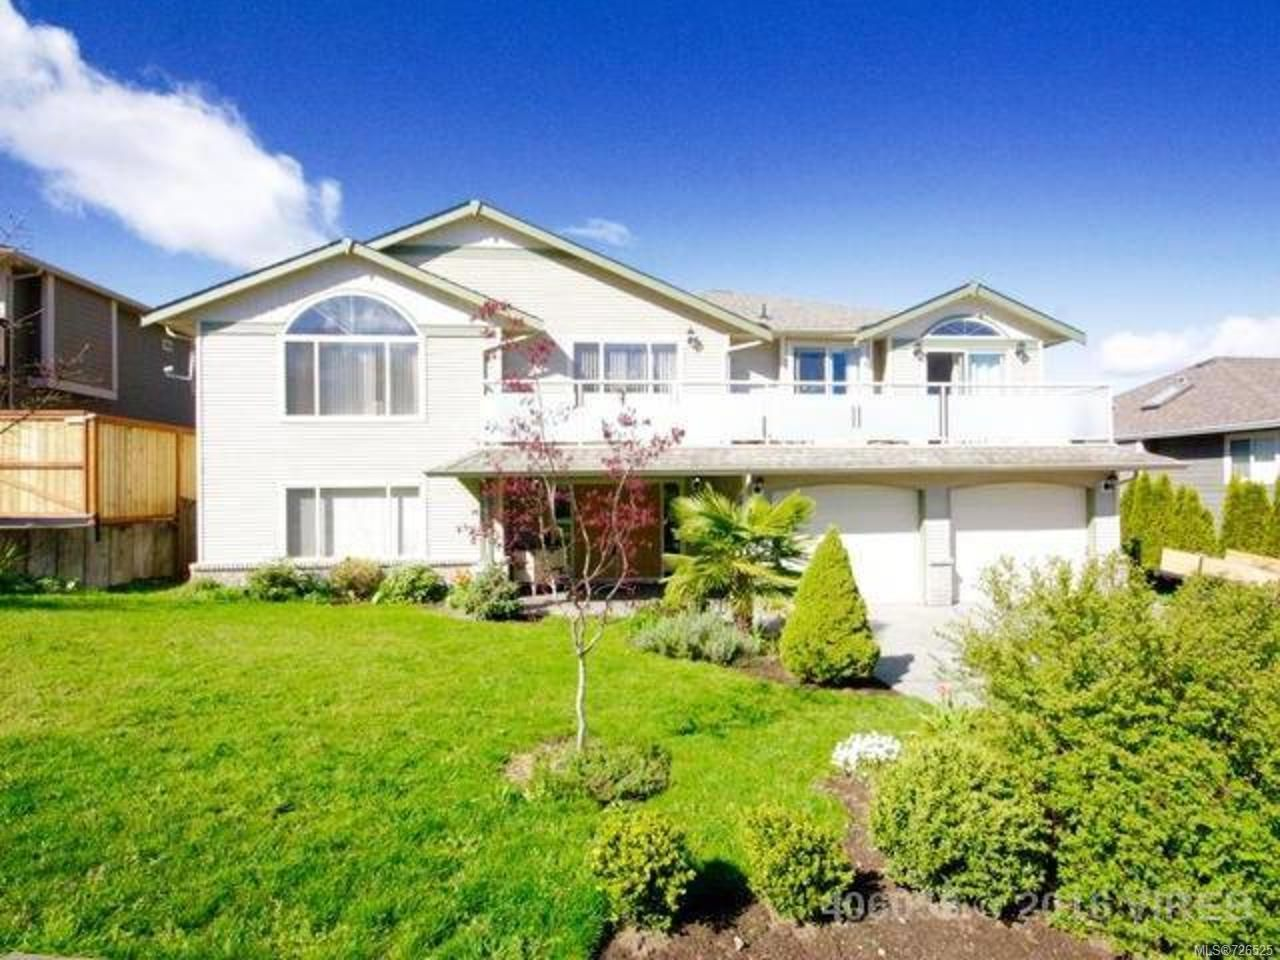 Main Photo: 355 Weaver Rd in NANAIMO: Na University District House for sale (Nanaimo)  : MLS®# 726525